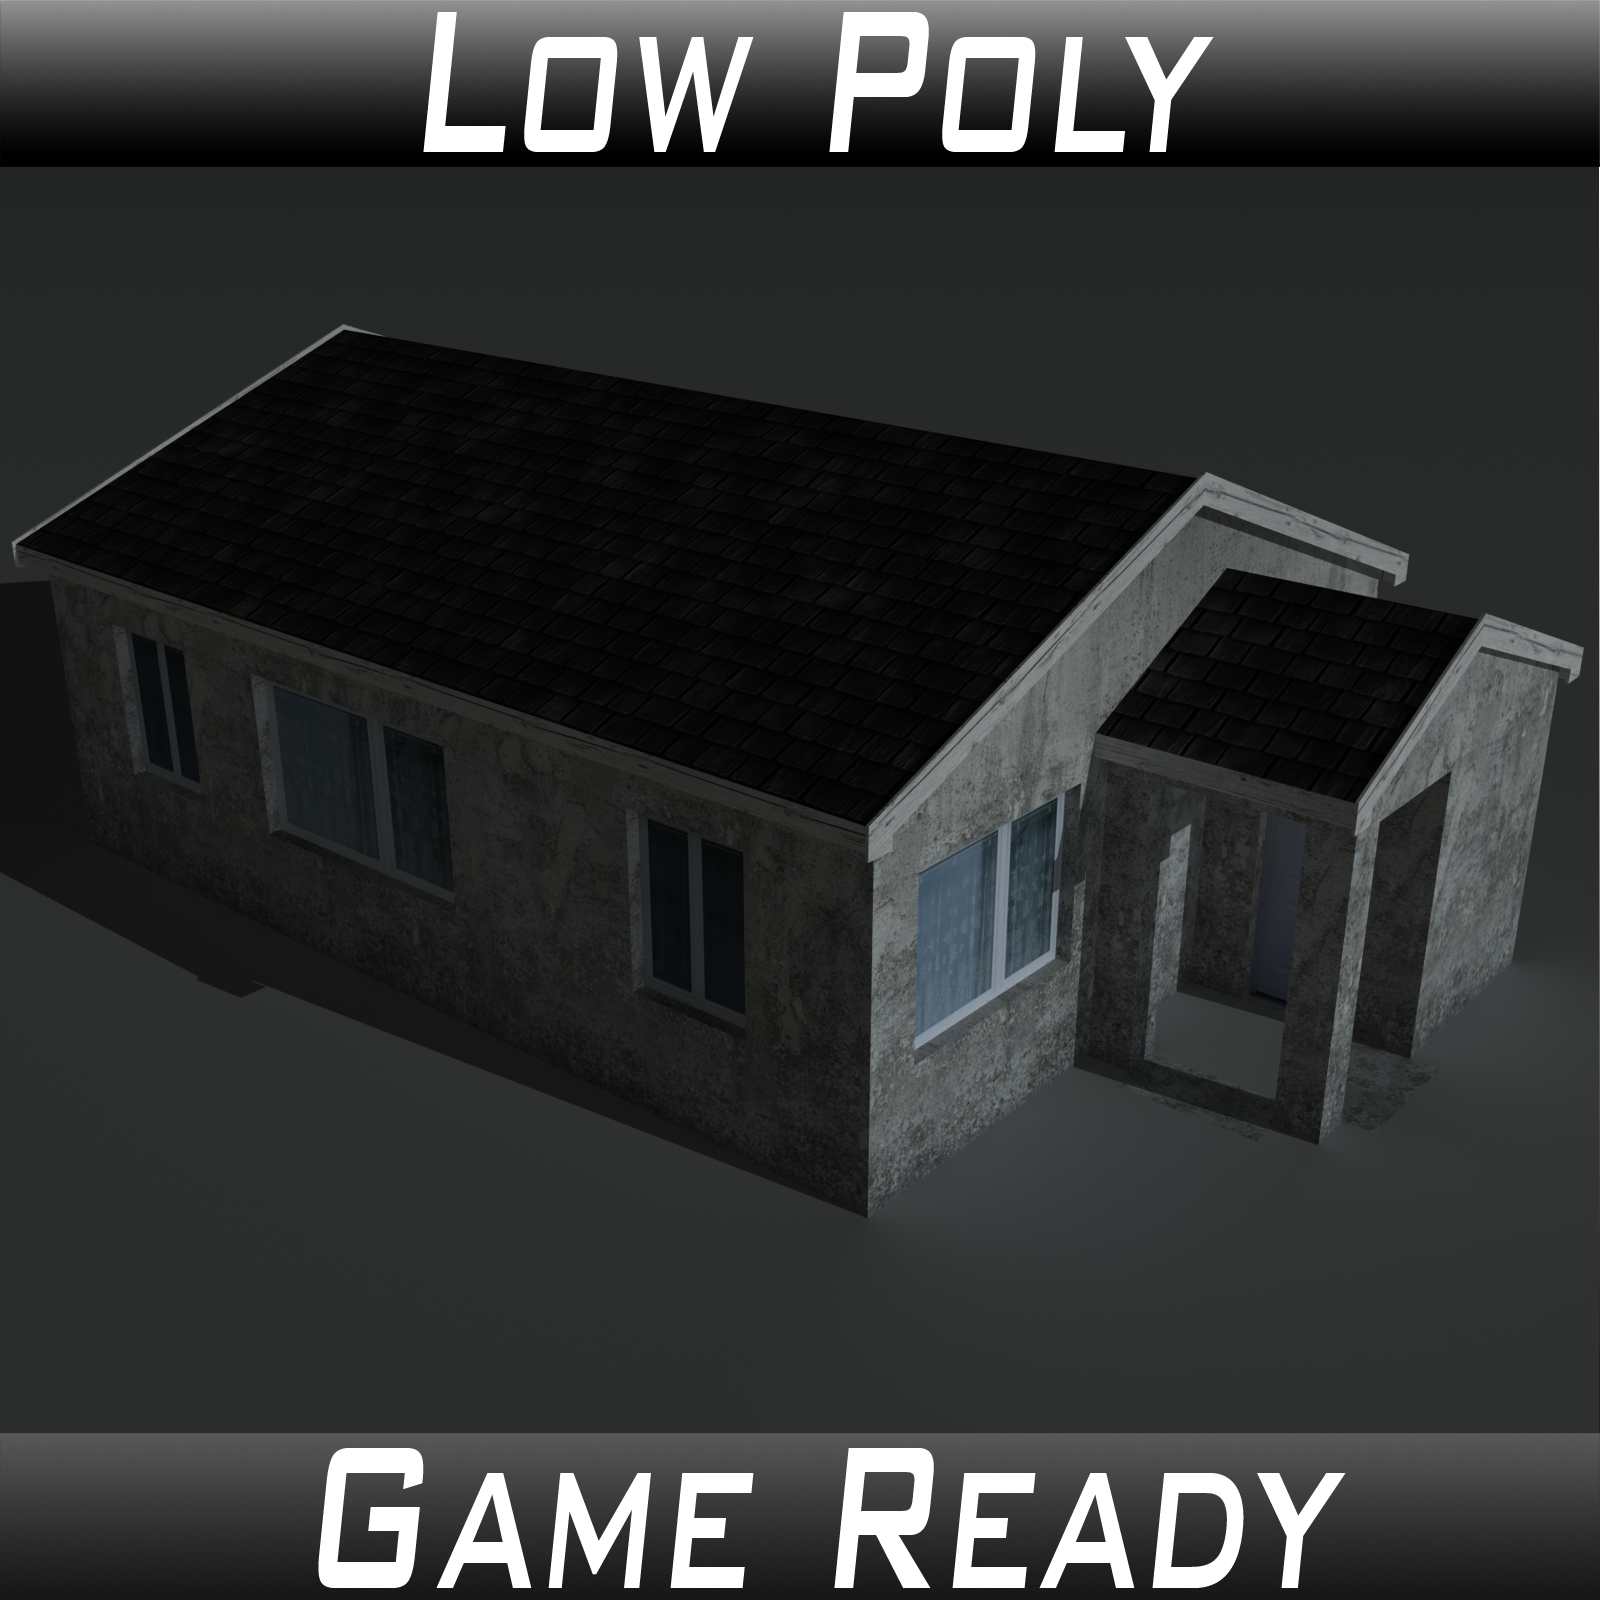 Low Poly House 2 - Extended License